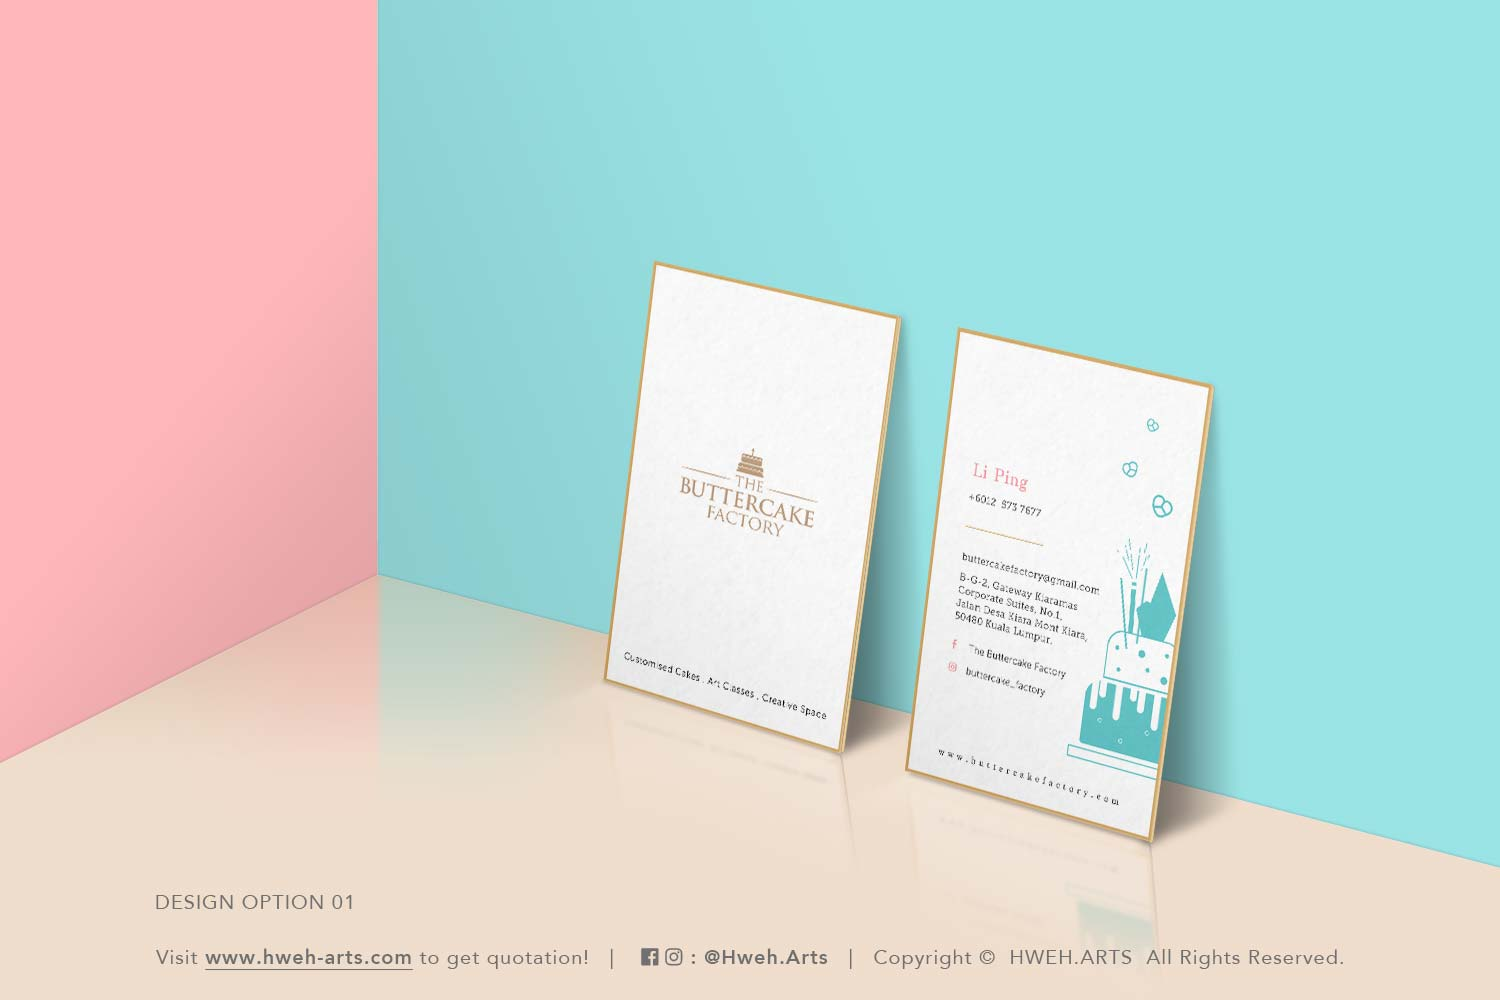 [ Print ] Name Card Design For The Buttercake Factory   Hweh Arts